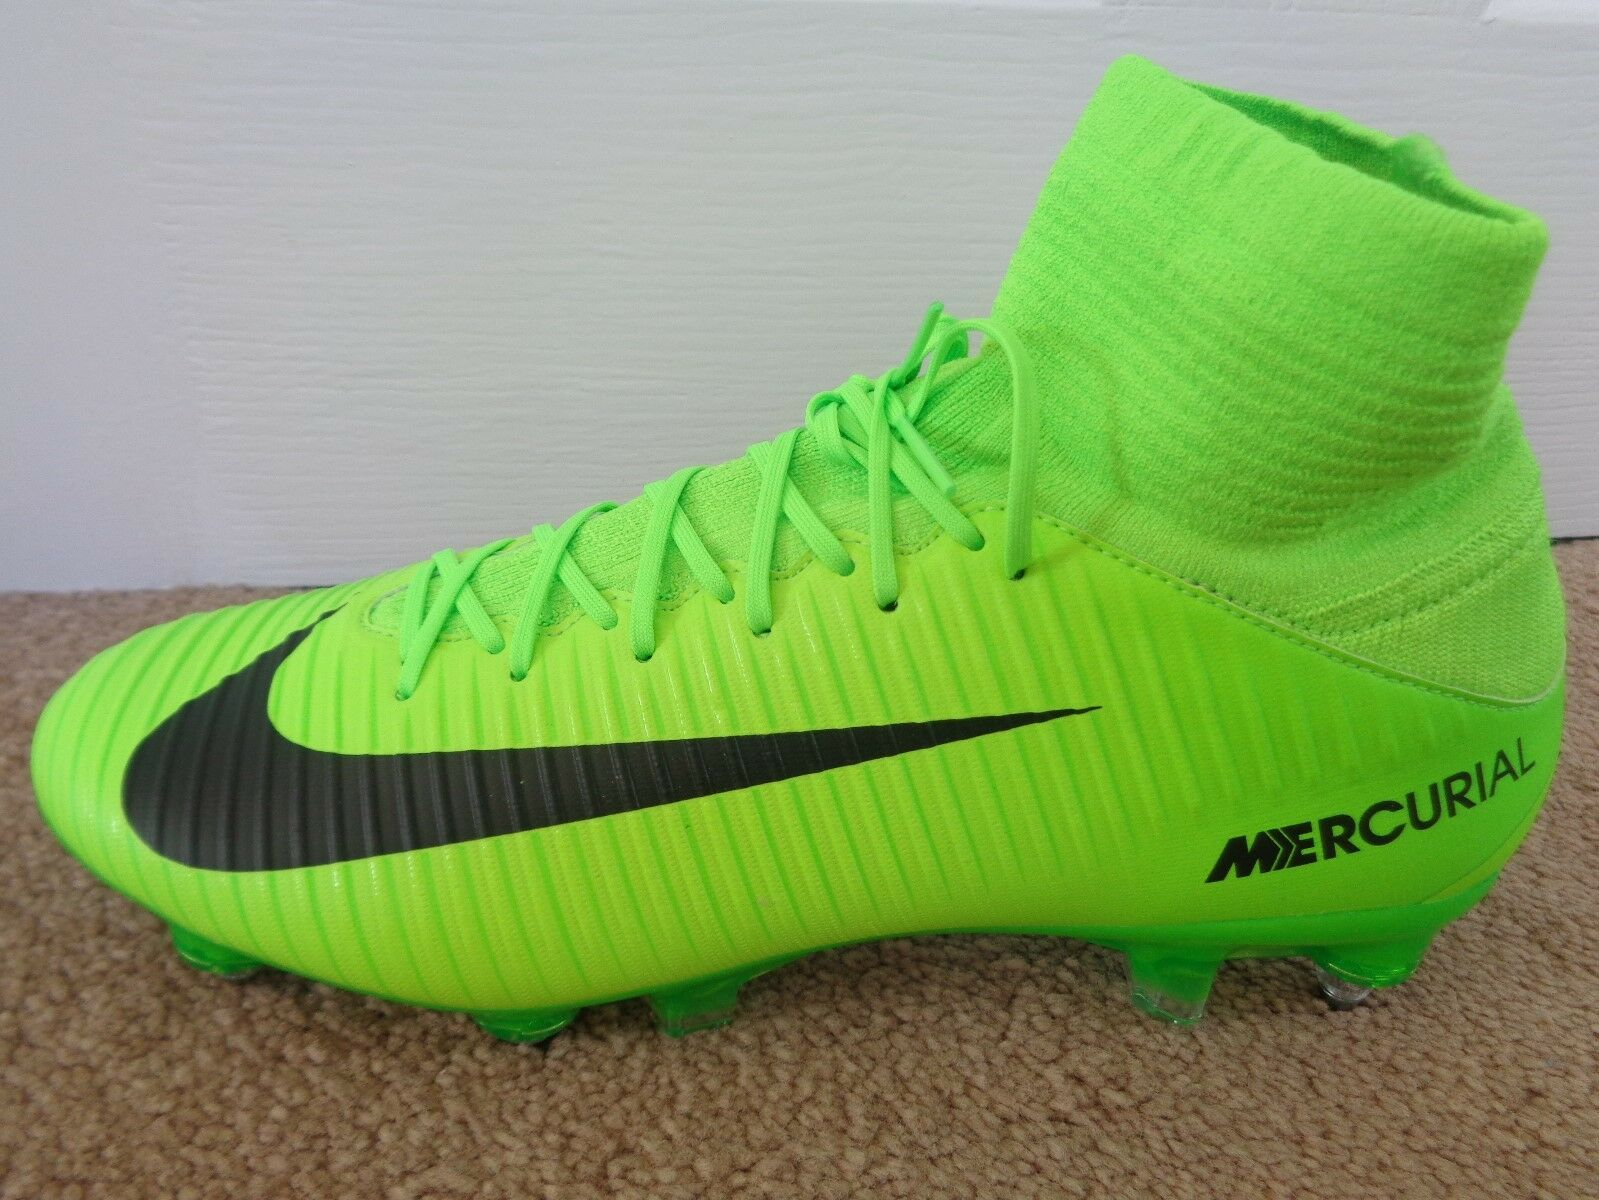 Nike mercurial Veloce 111DF SG PRO football boot 852304 852304 852304 303 eu 41 us 8 NEW fde8a6